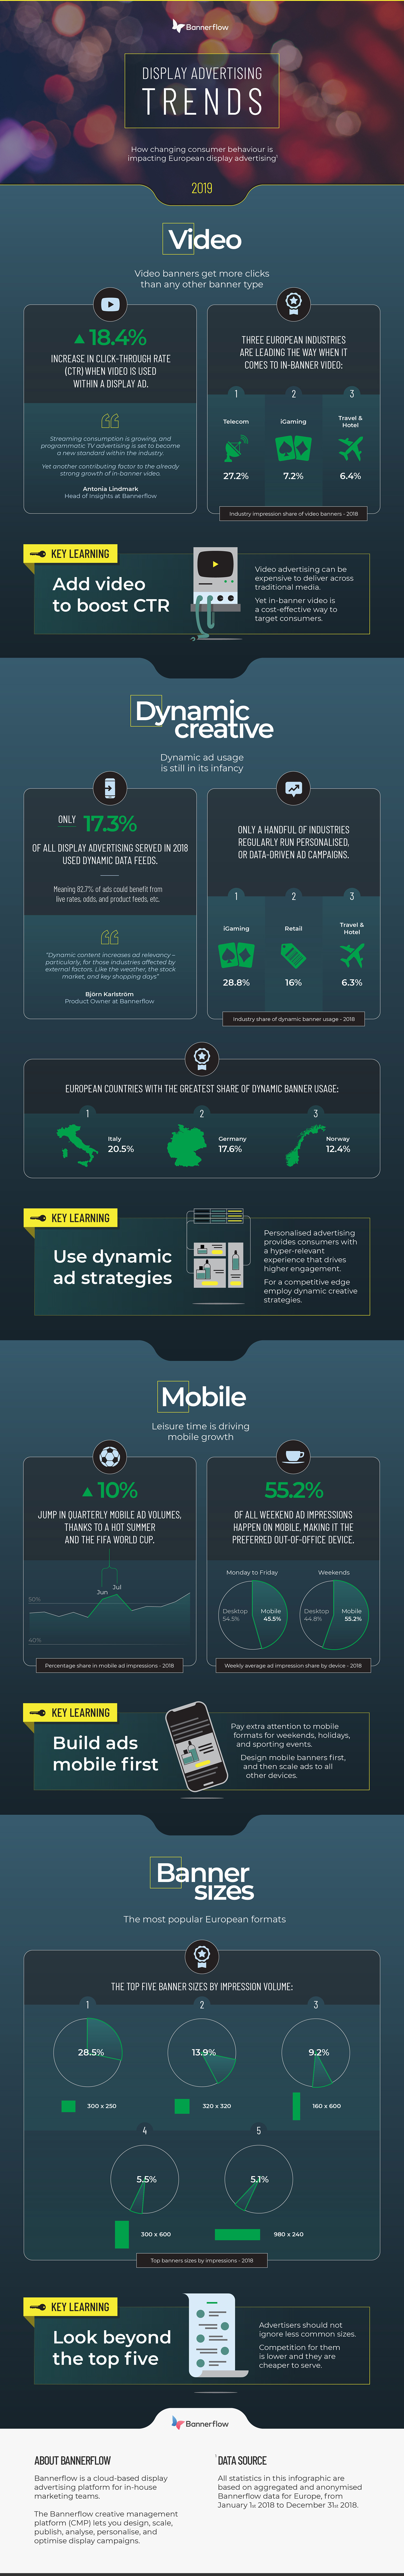 Display Advertising Trends 2019 - infographic.jpg